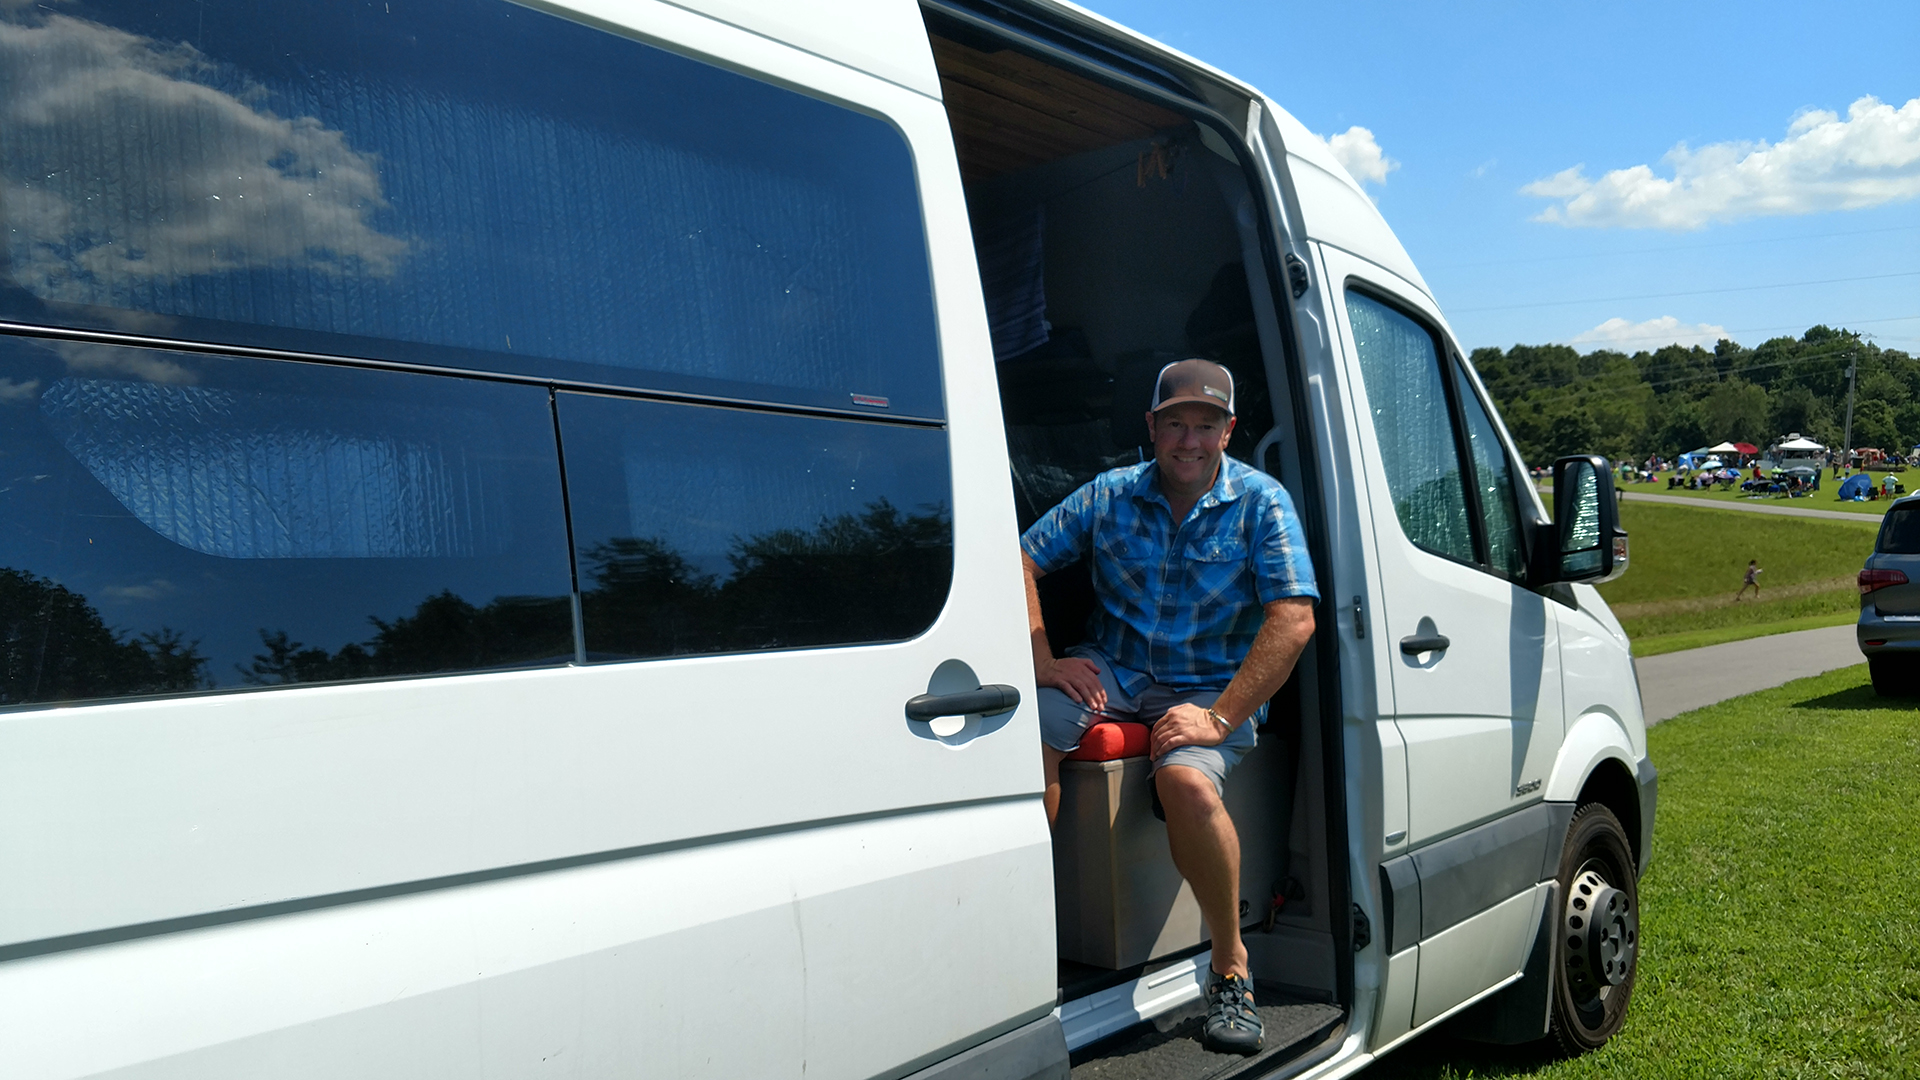 Van-Life: An Interview with Danny and Darlene in Their